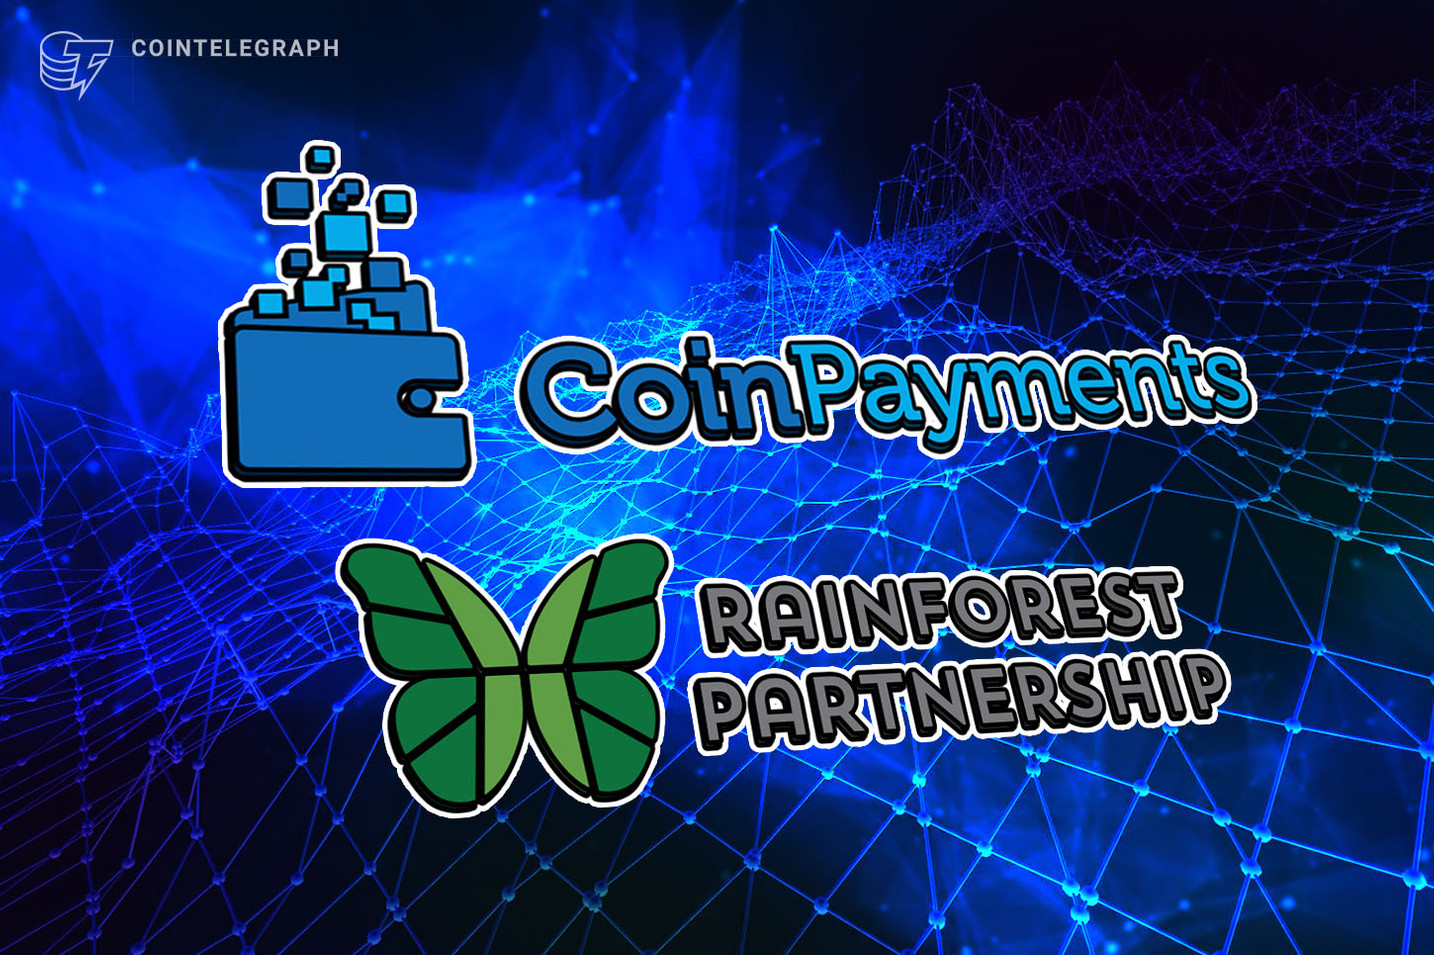 Crypto Payment Gateway Raises Money for Rain Forest Charity